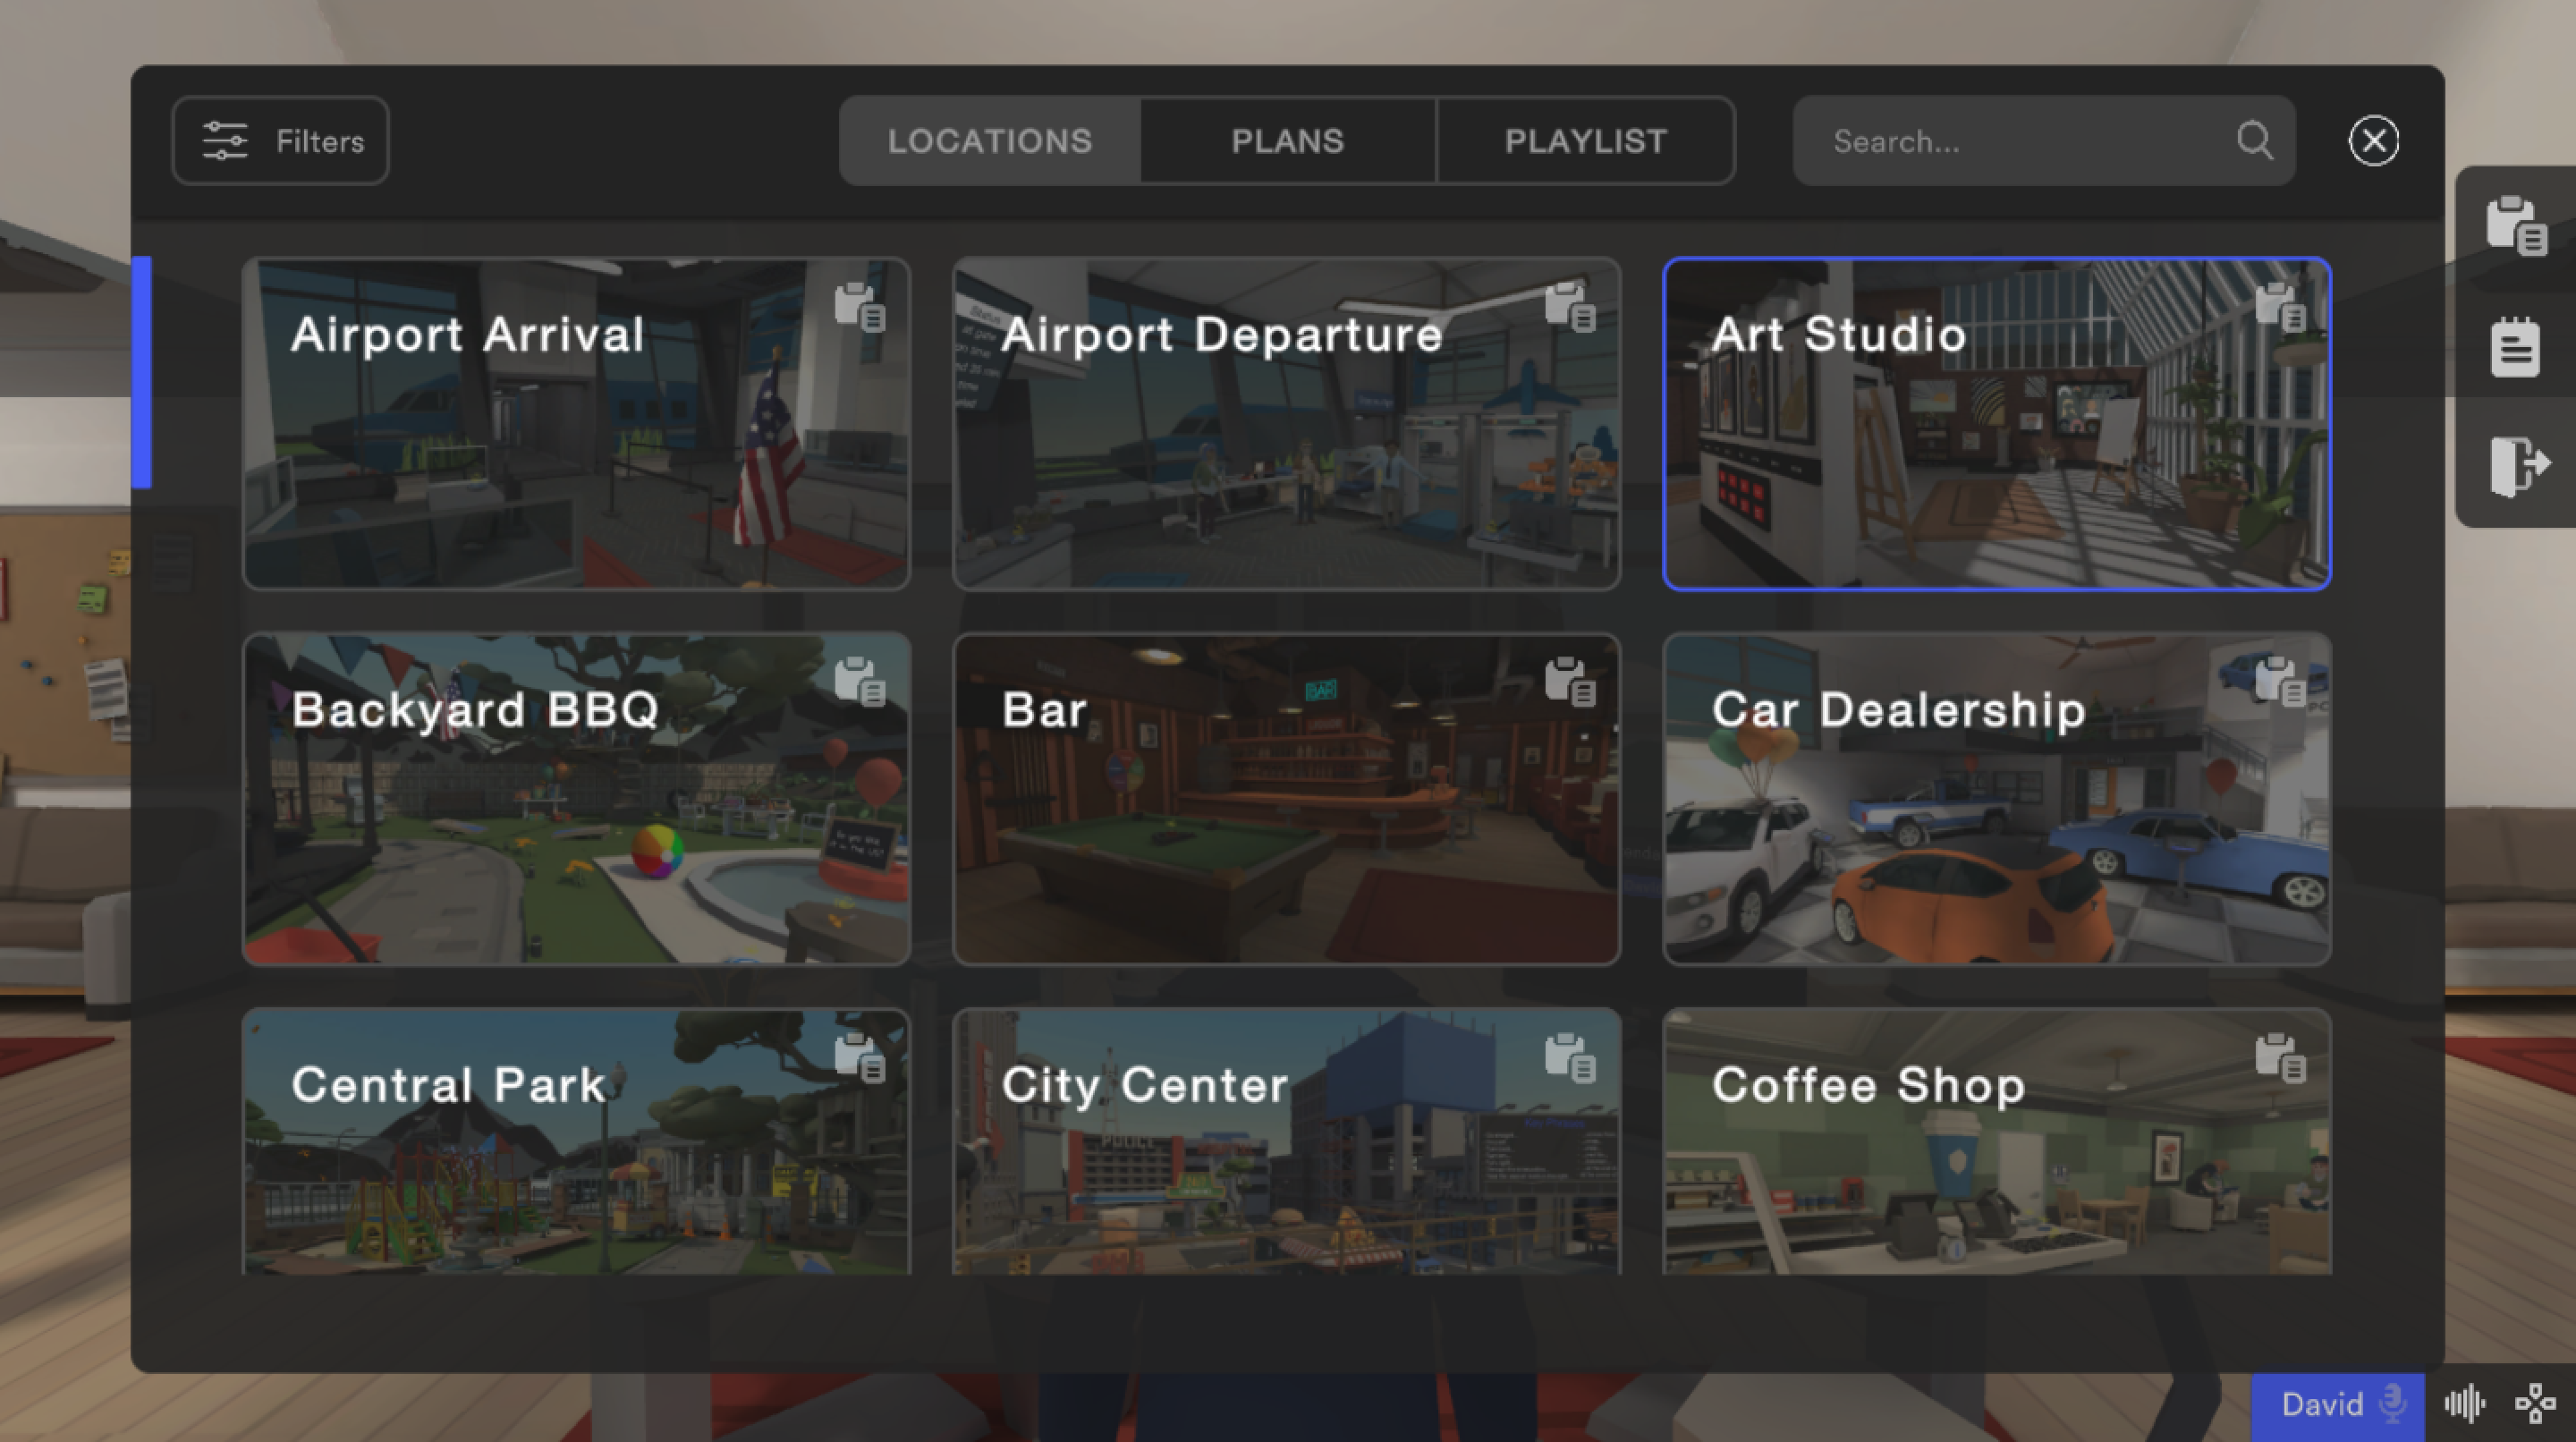 Virtual reality teaching software interface showing different locations